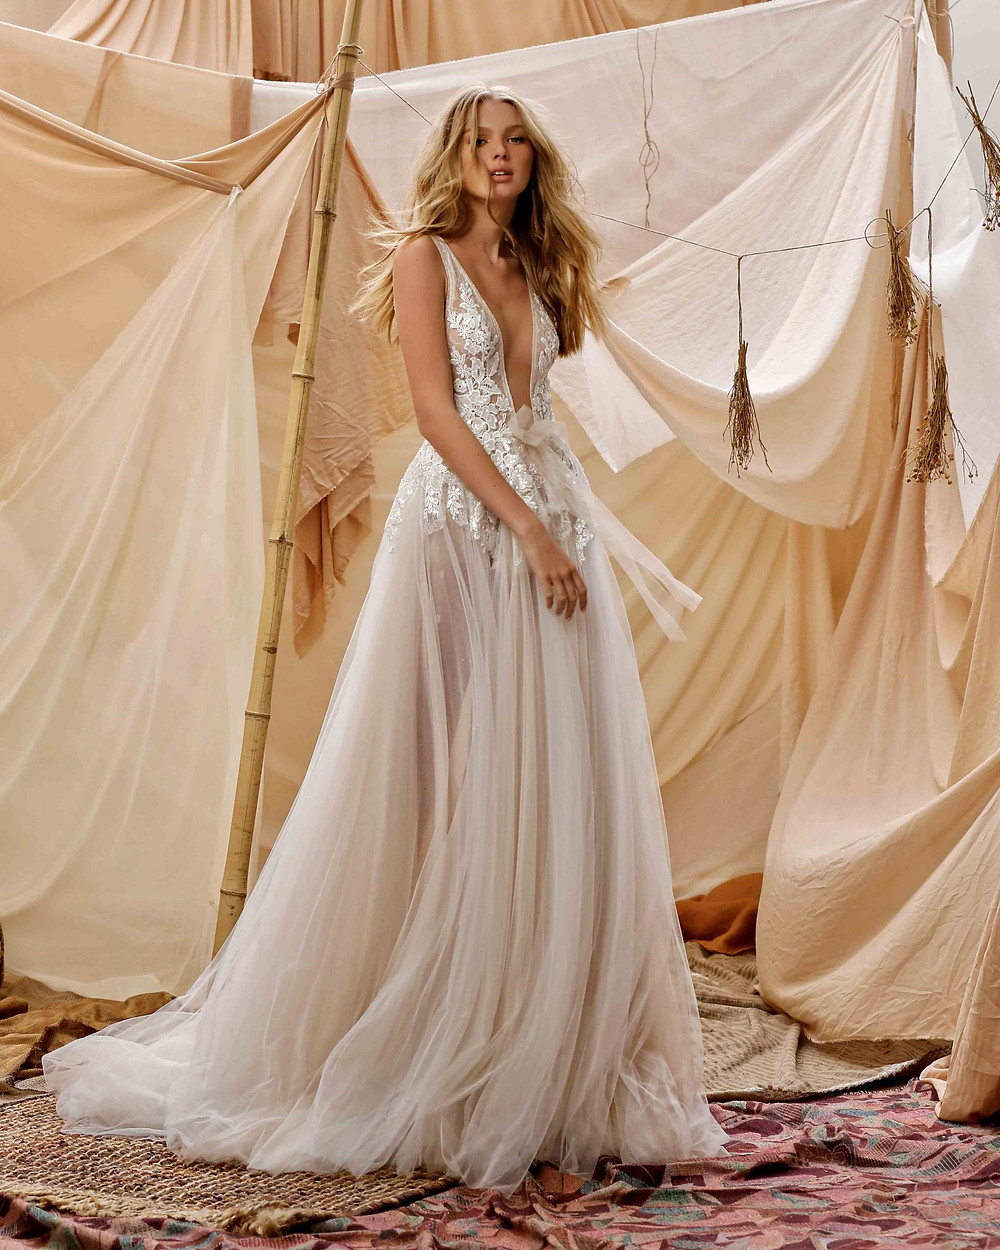 A Berta 2021 low-V flowy wedding dress, with flower embroidery